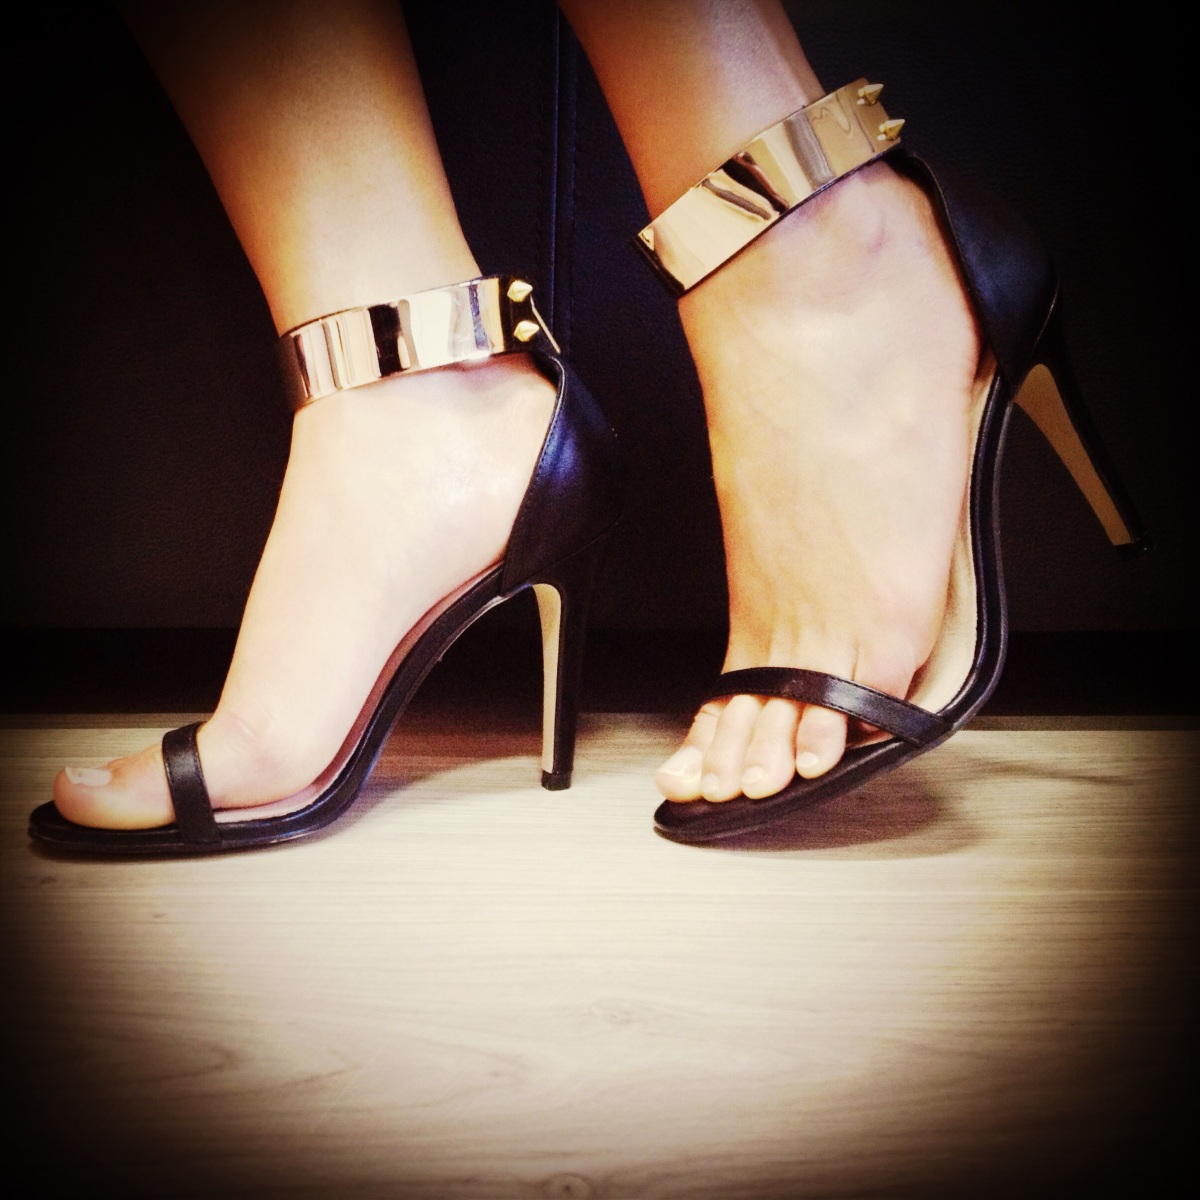 Shoe-a-licious | ankles strapped